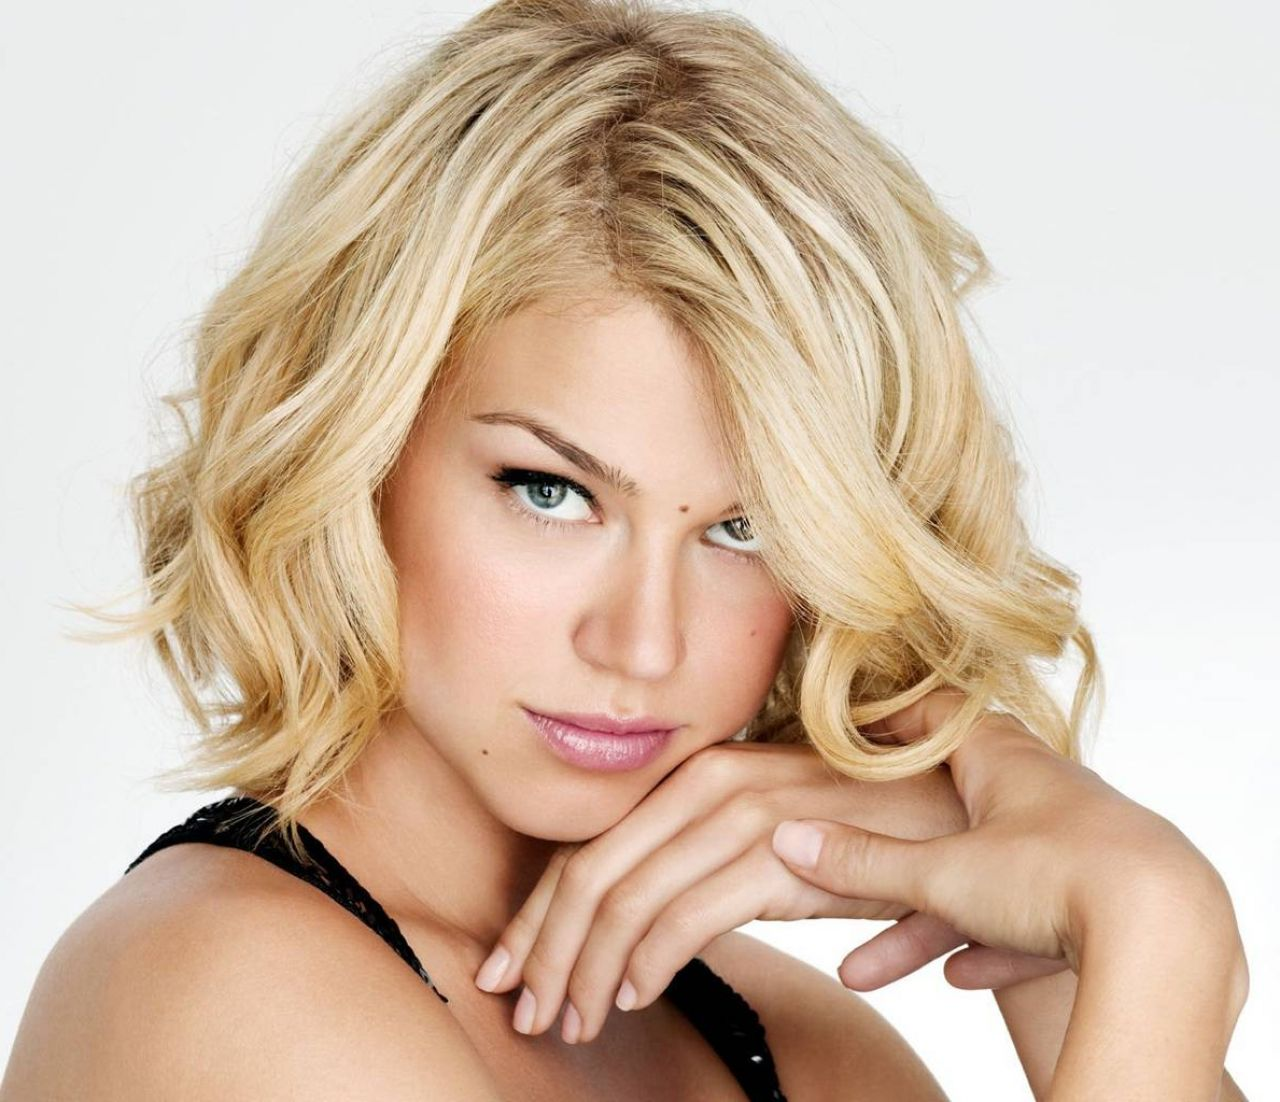 short-hairstyles-for-oval-faces-54bf118c5dcce